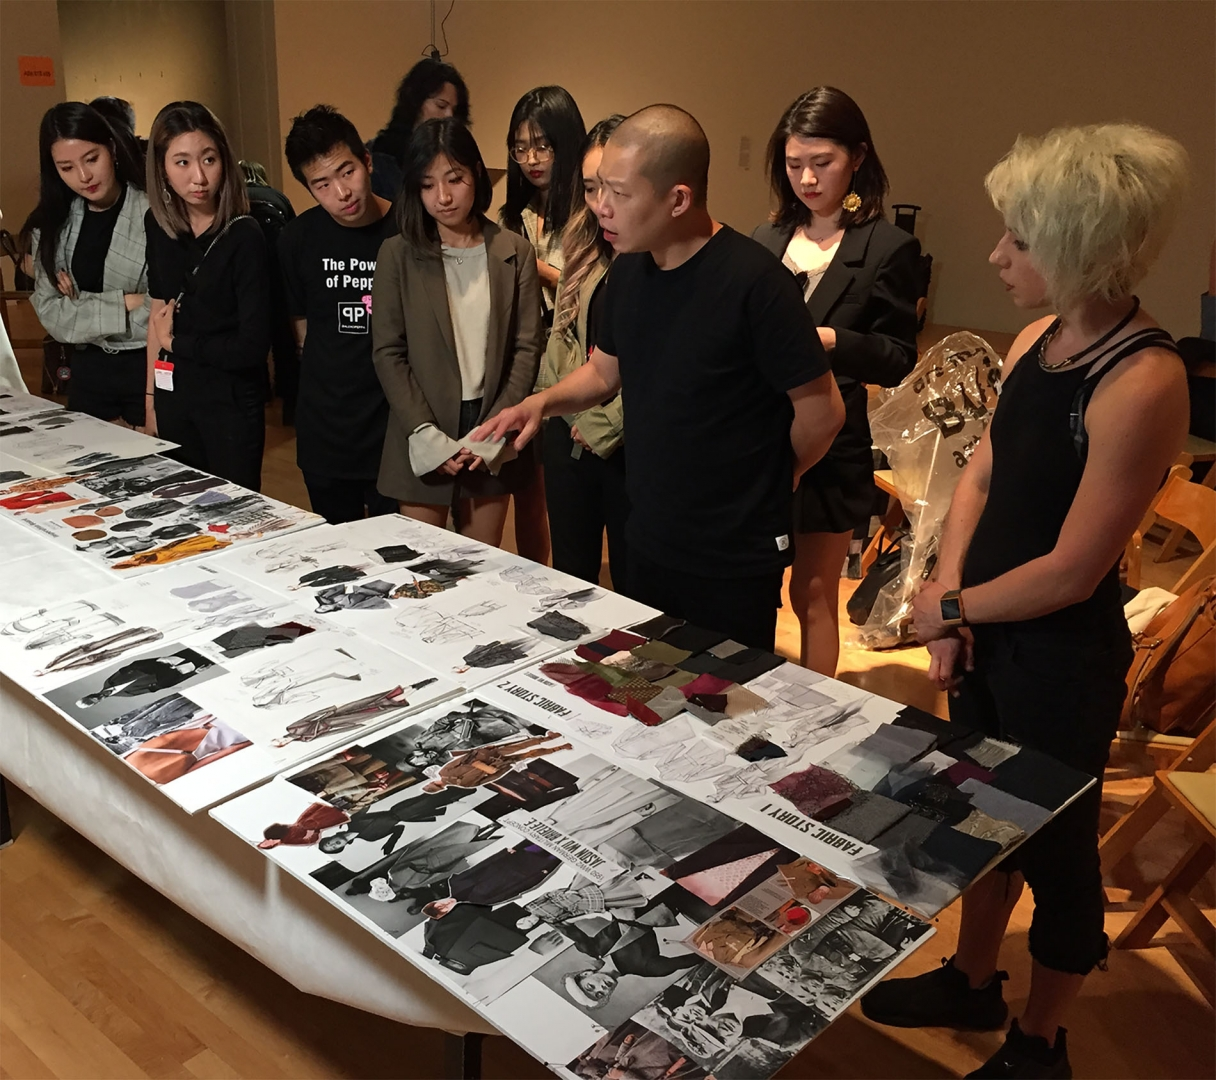 Senior Mentor Jason Wu doing Critique with Team at LACMA